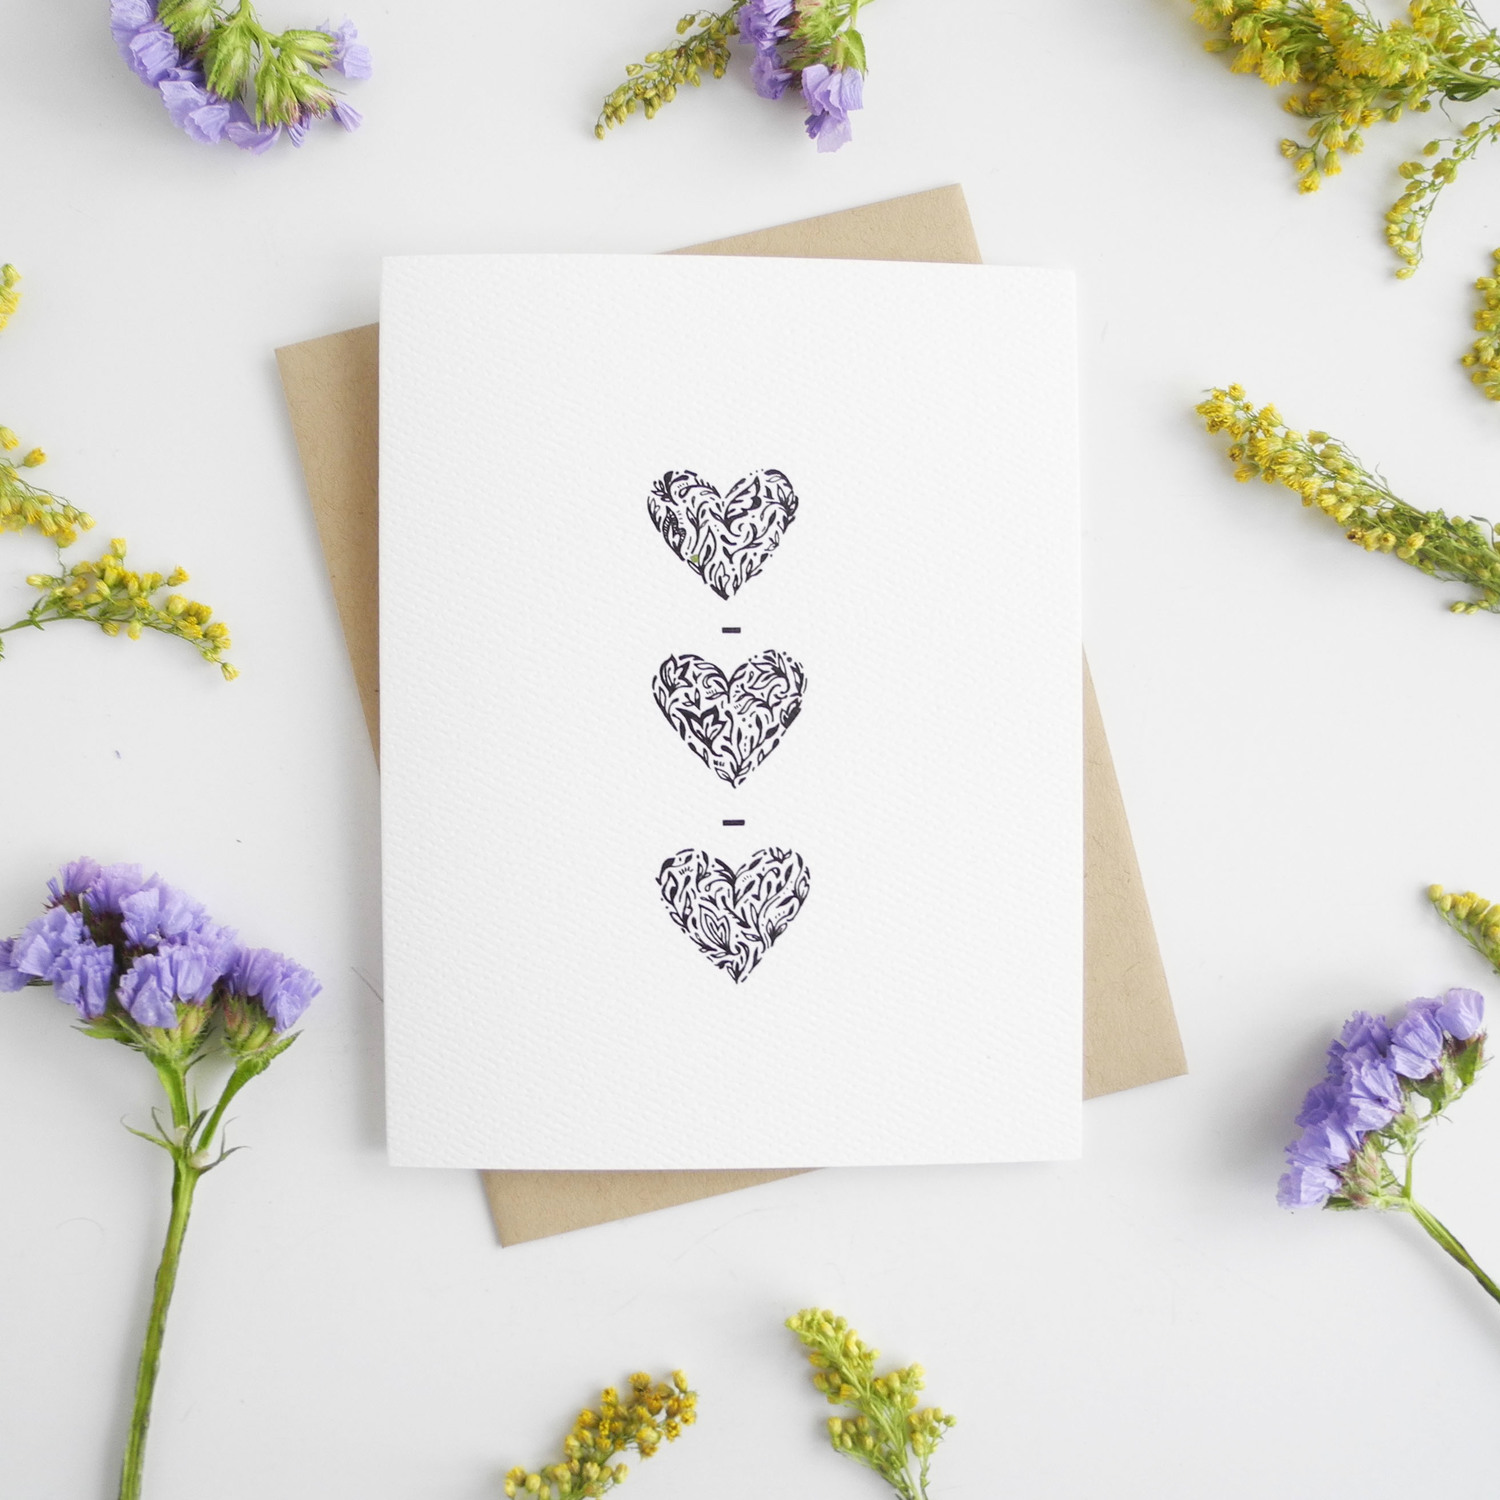 Hearts hand illustrated greeting card doodle bubble designs hearts hand illustrated greeting card m4hsunfo